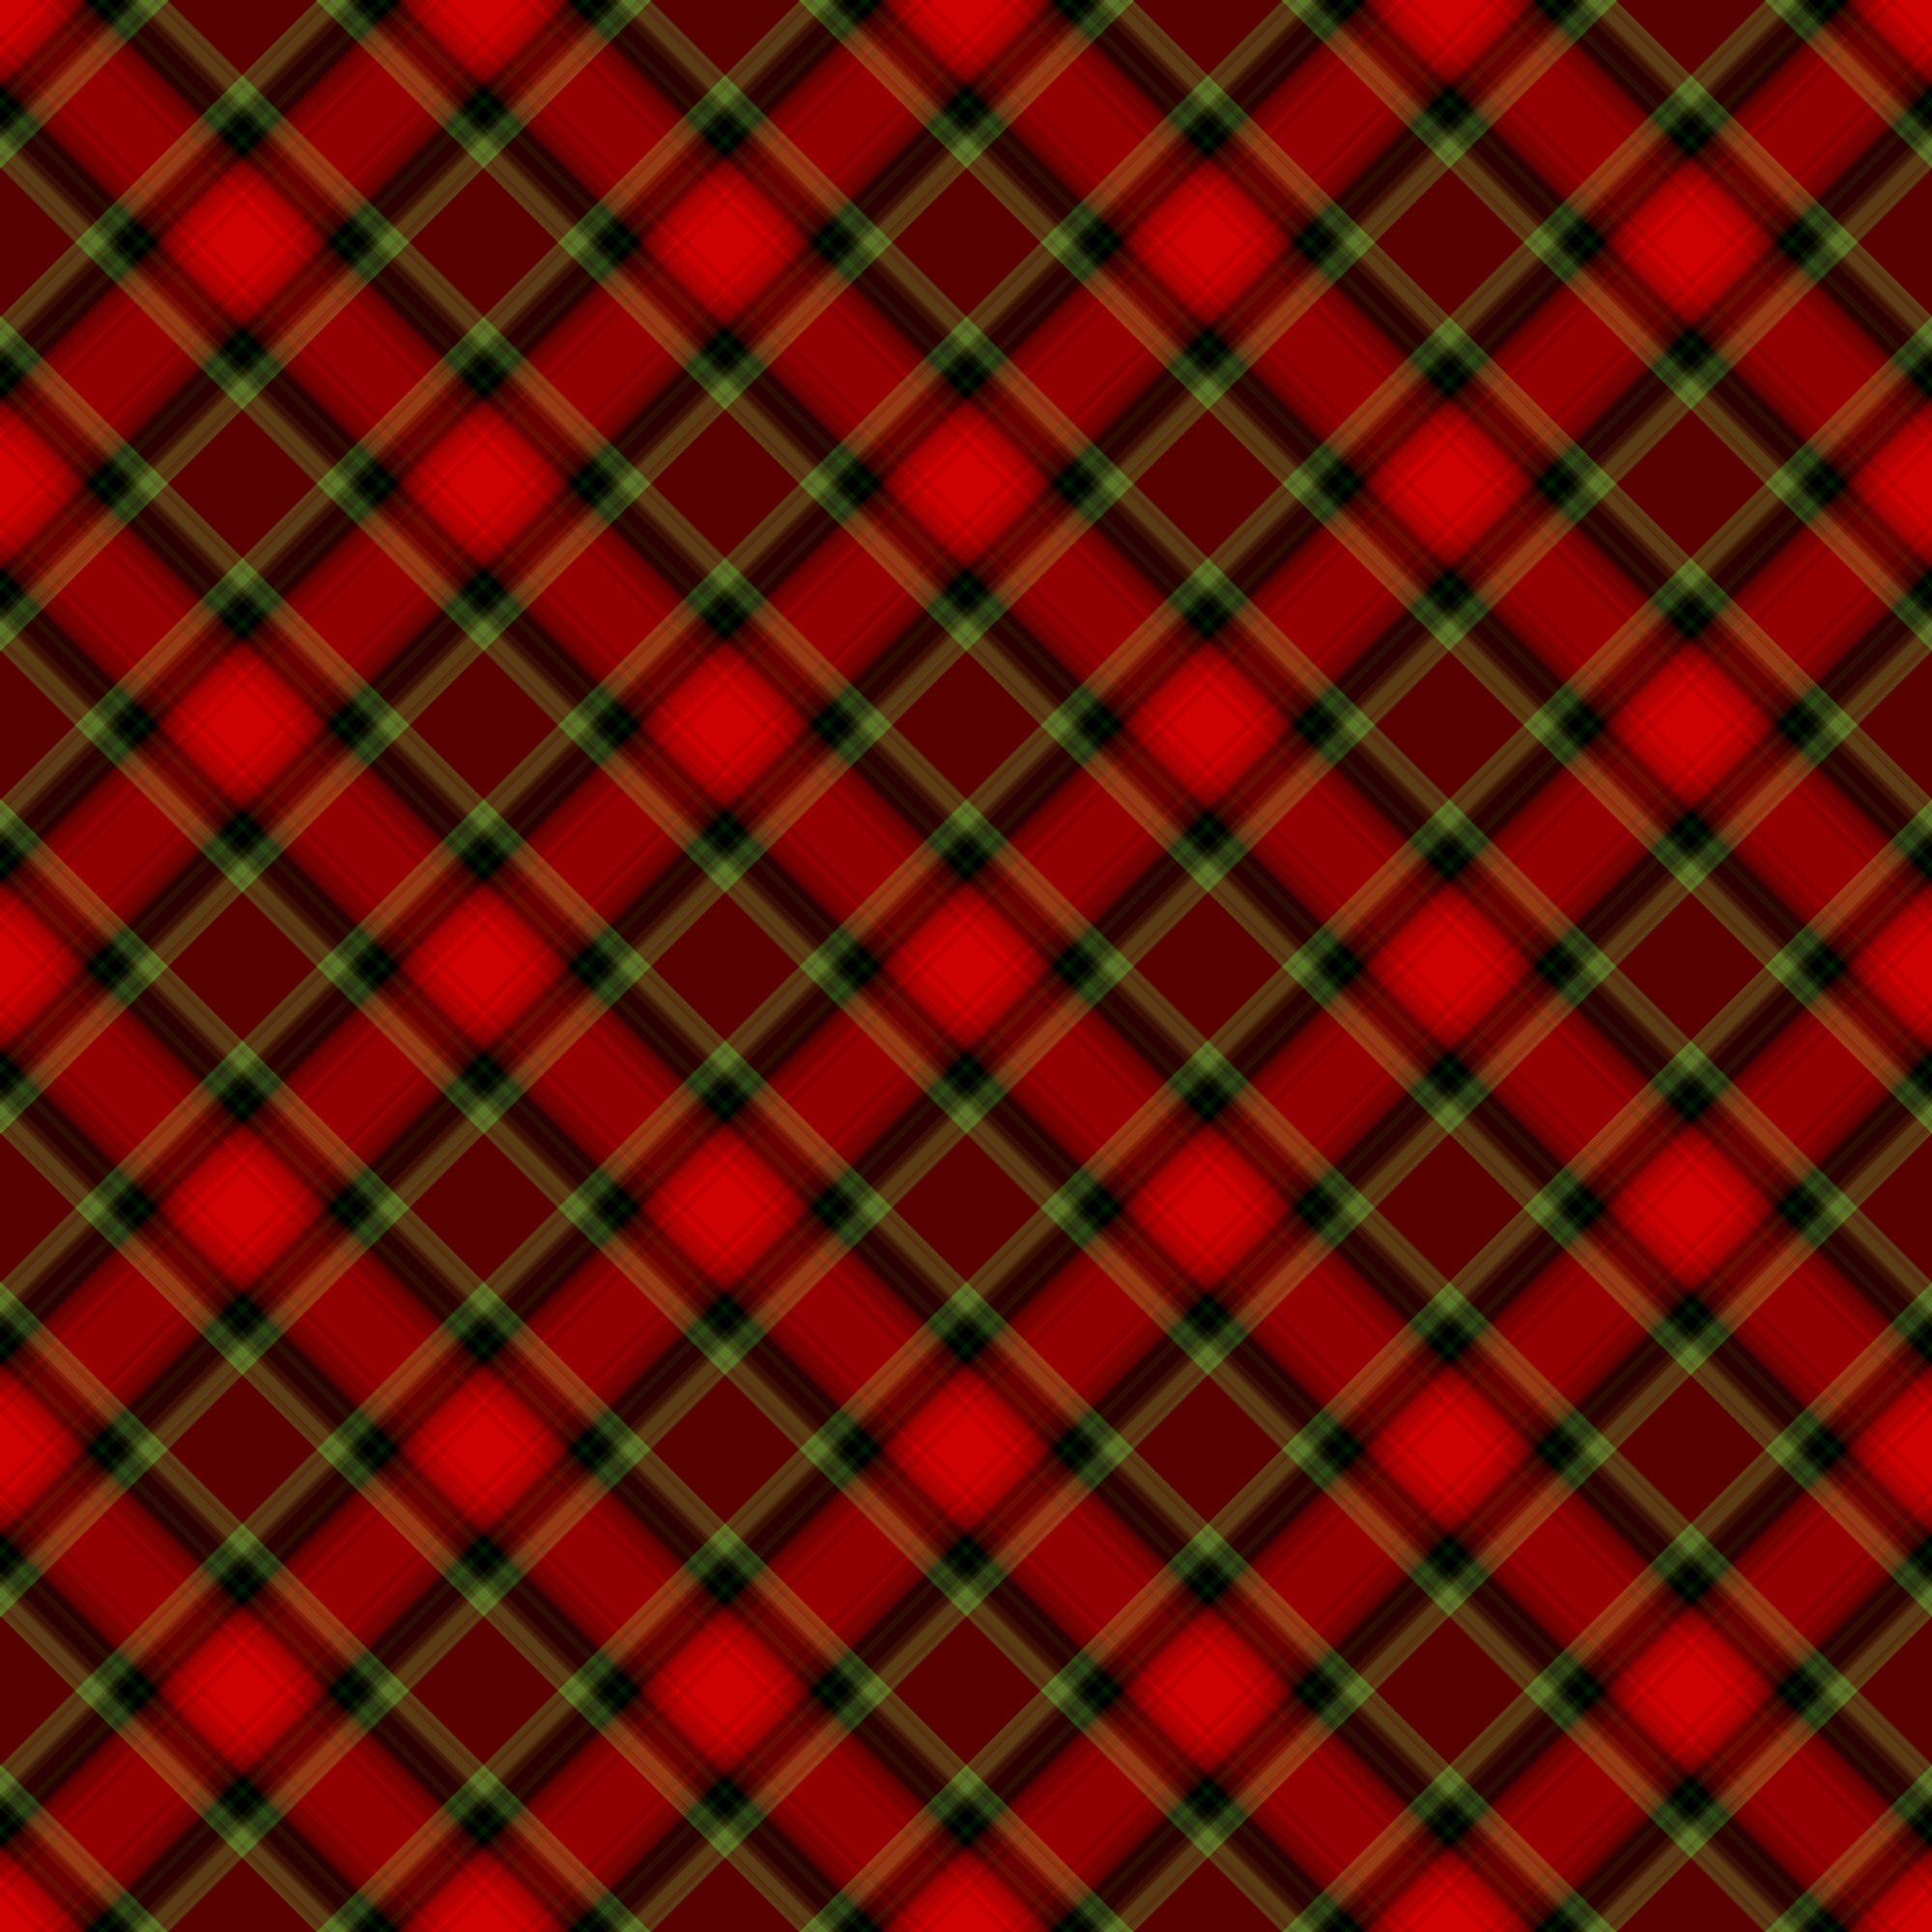 Plaid background  Download free stunning backgrounds for desktop mobile laptop in any